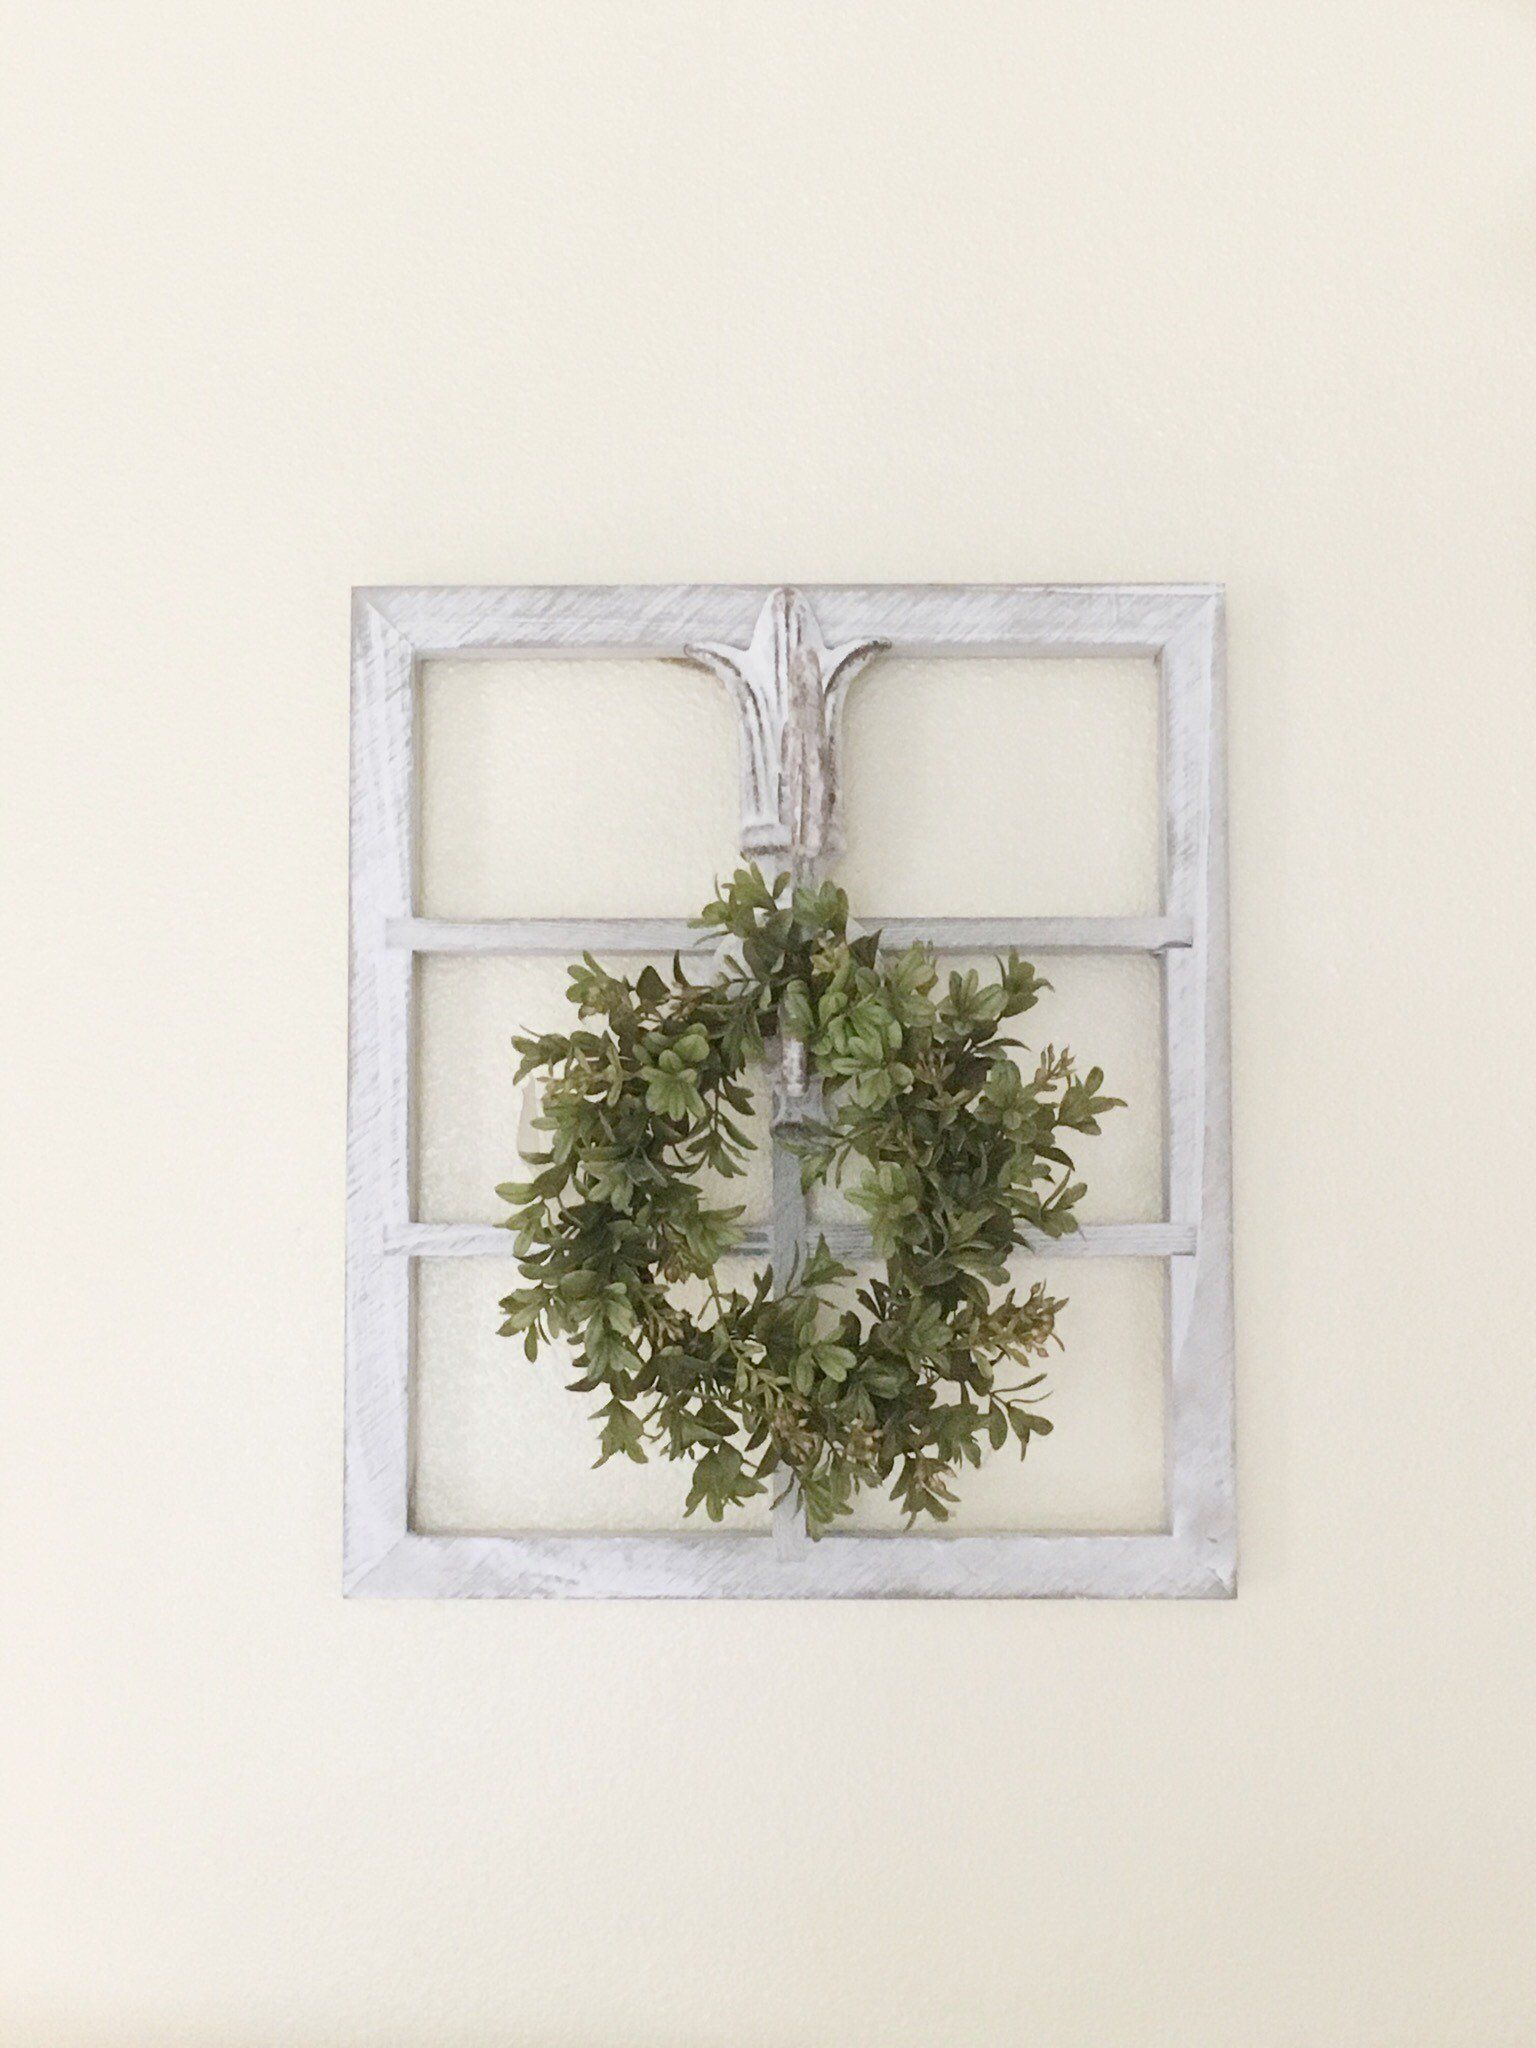 Window Frame Wall Decor Farmhouse French Country Cottage Fl Hanging Rustic With Wreath Wood